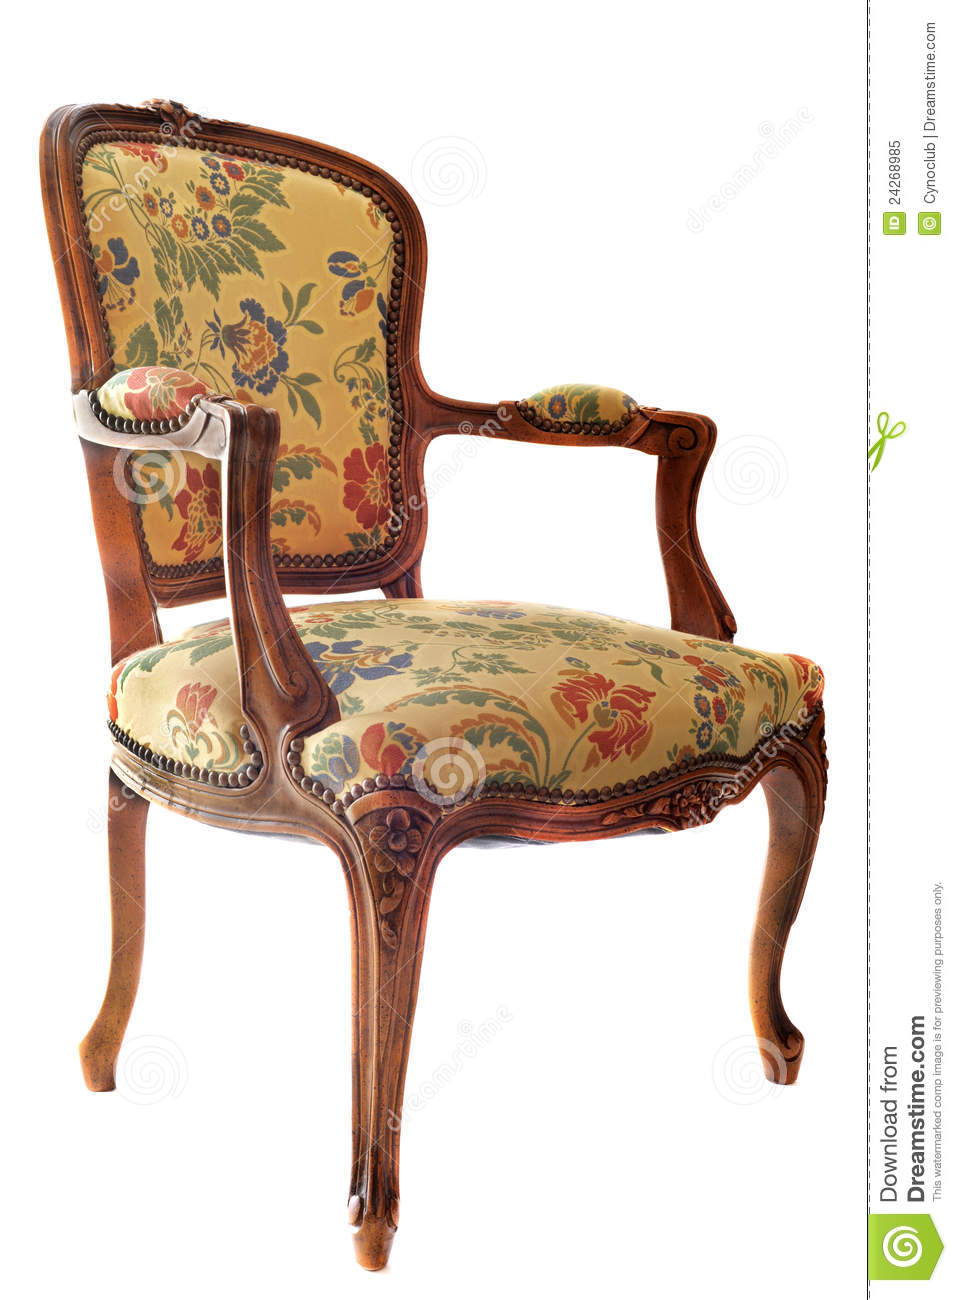 Antique chair - Antique Chair Stock Image. Image Of Ornament, Relax, Fashioned